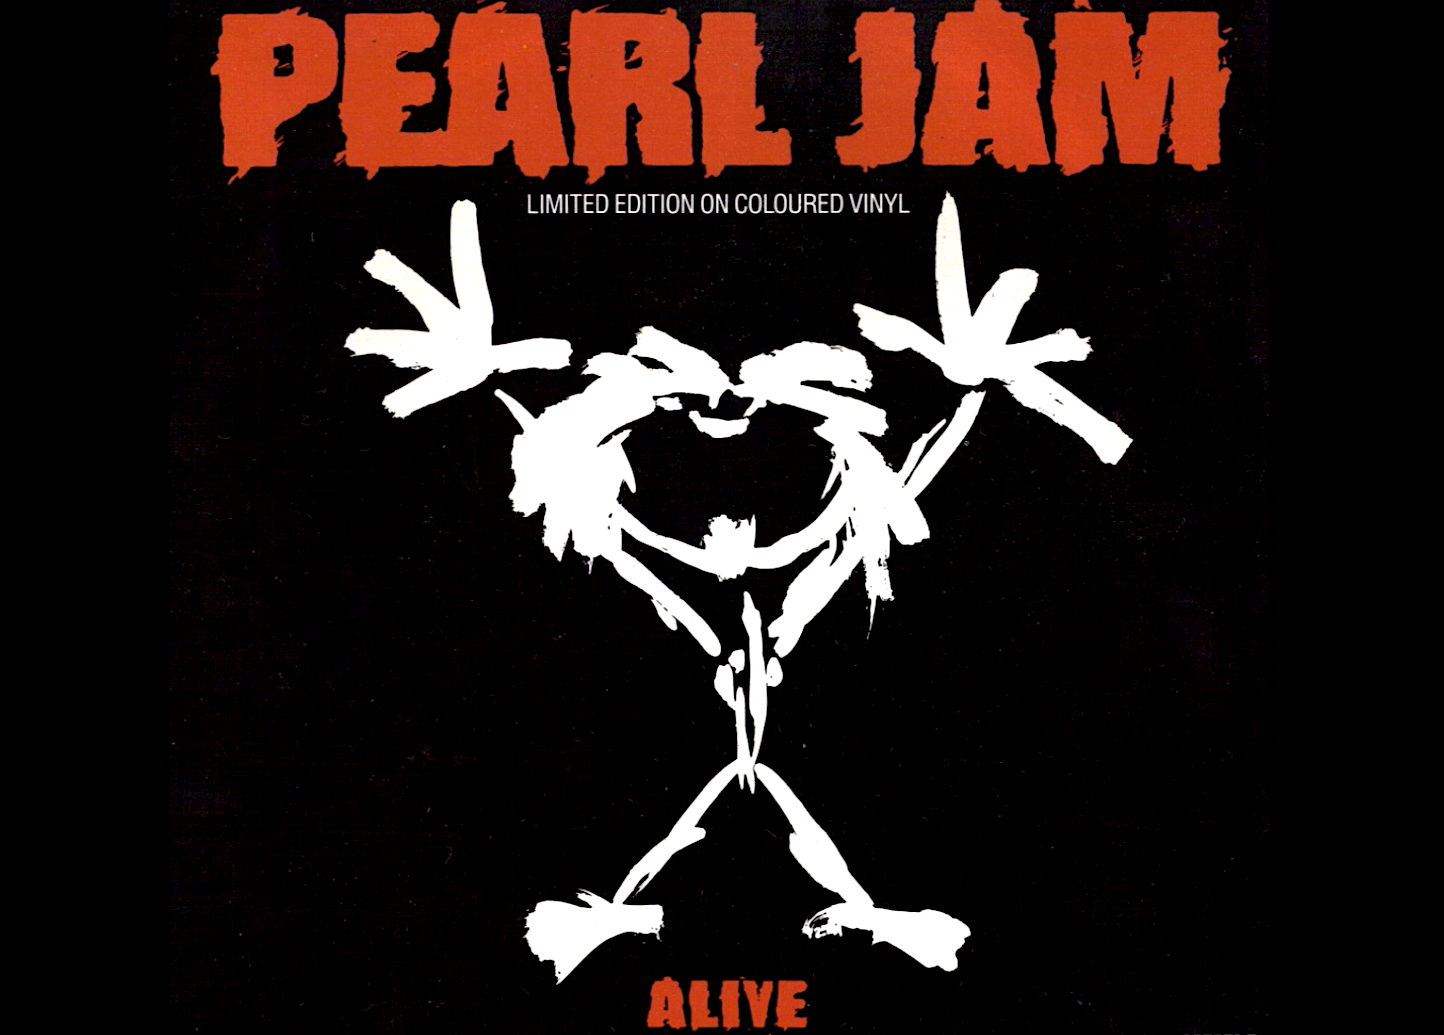 The design known as 'Stickman' that served as the artwork on the cover of the 'Alive' single.